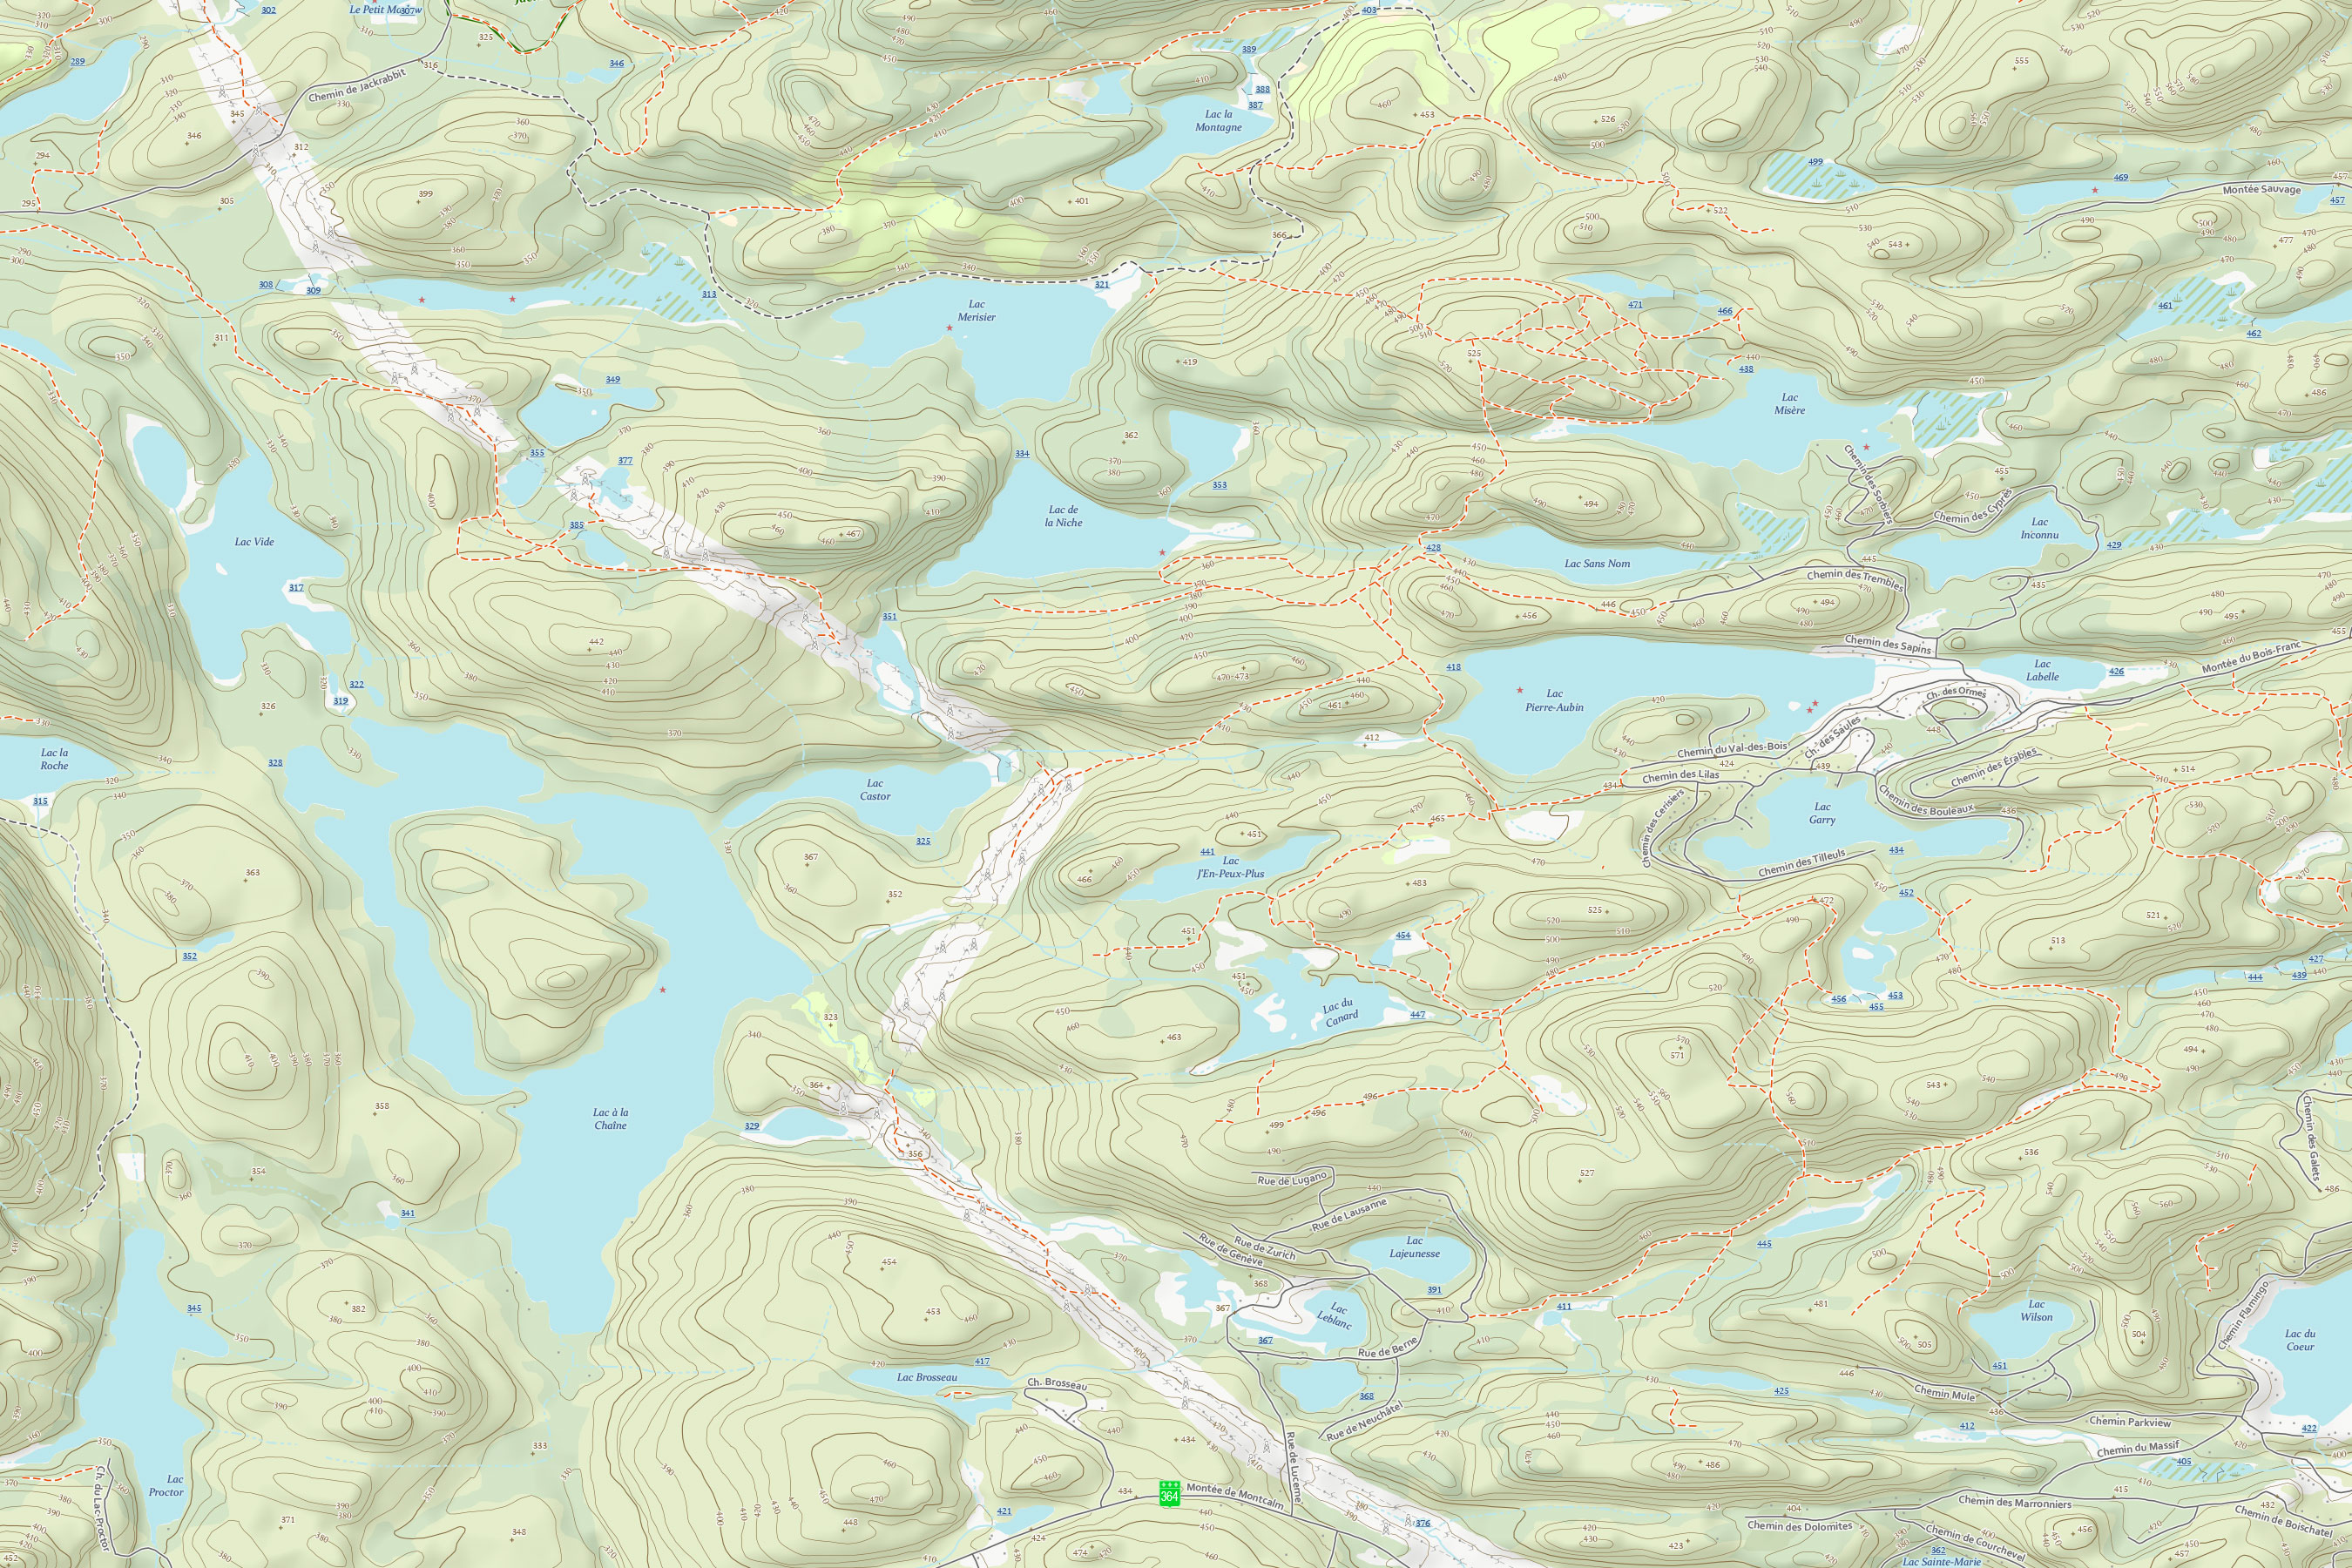 Example 2 of Topographic Map